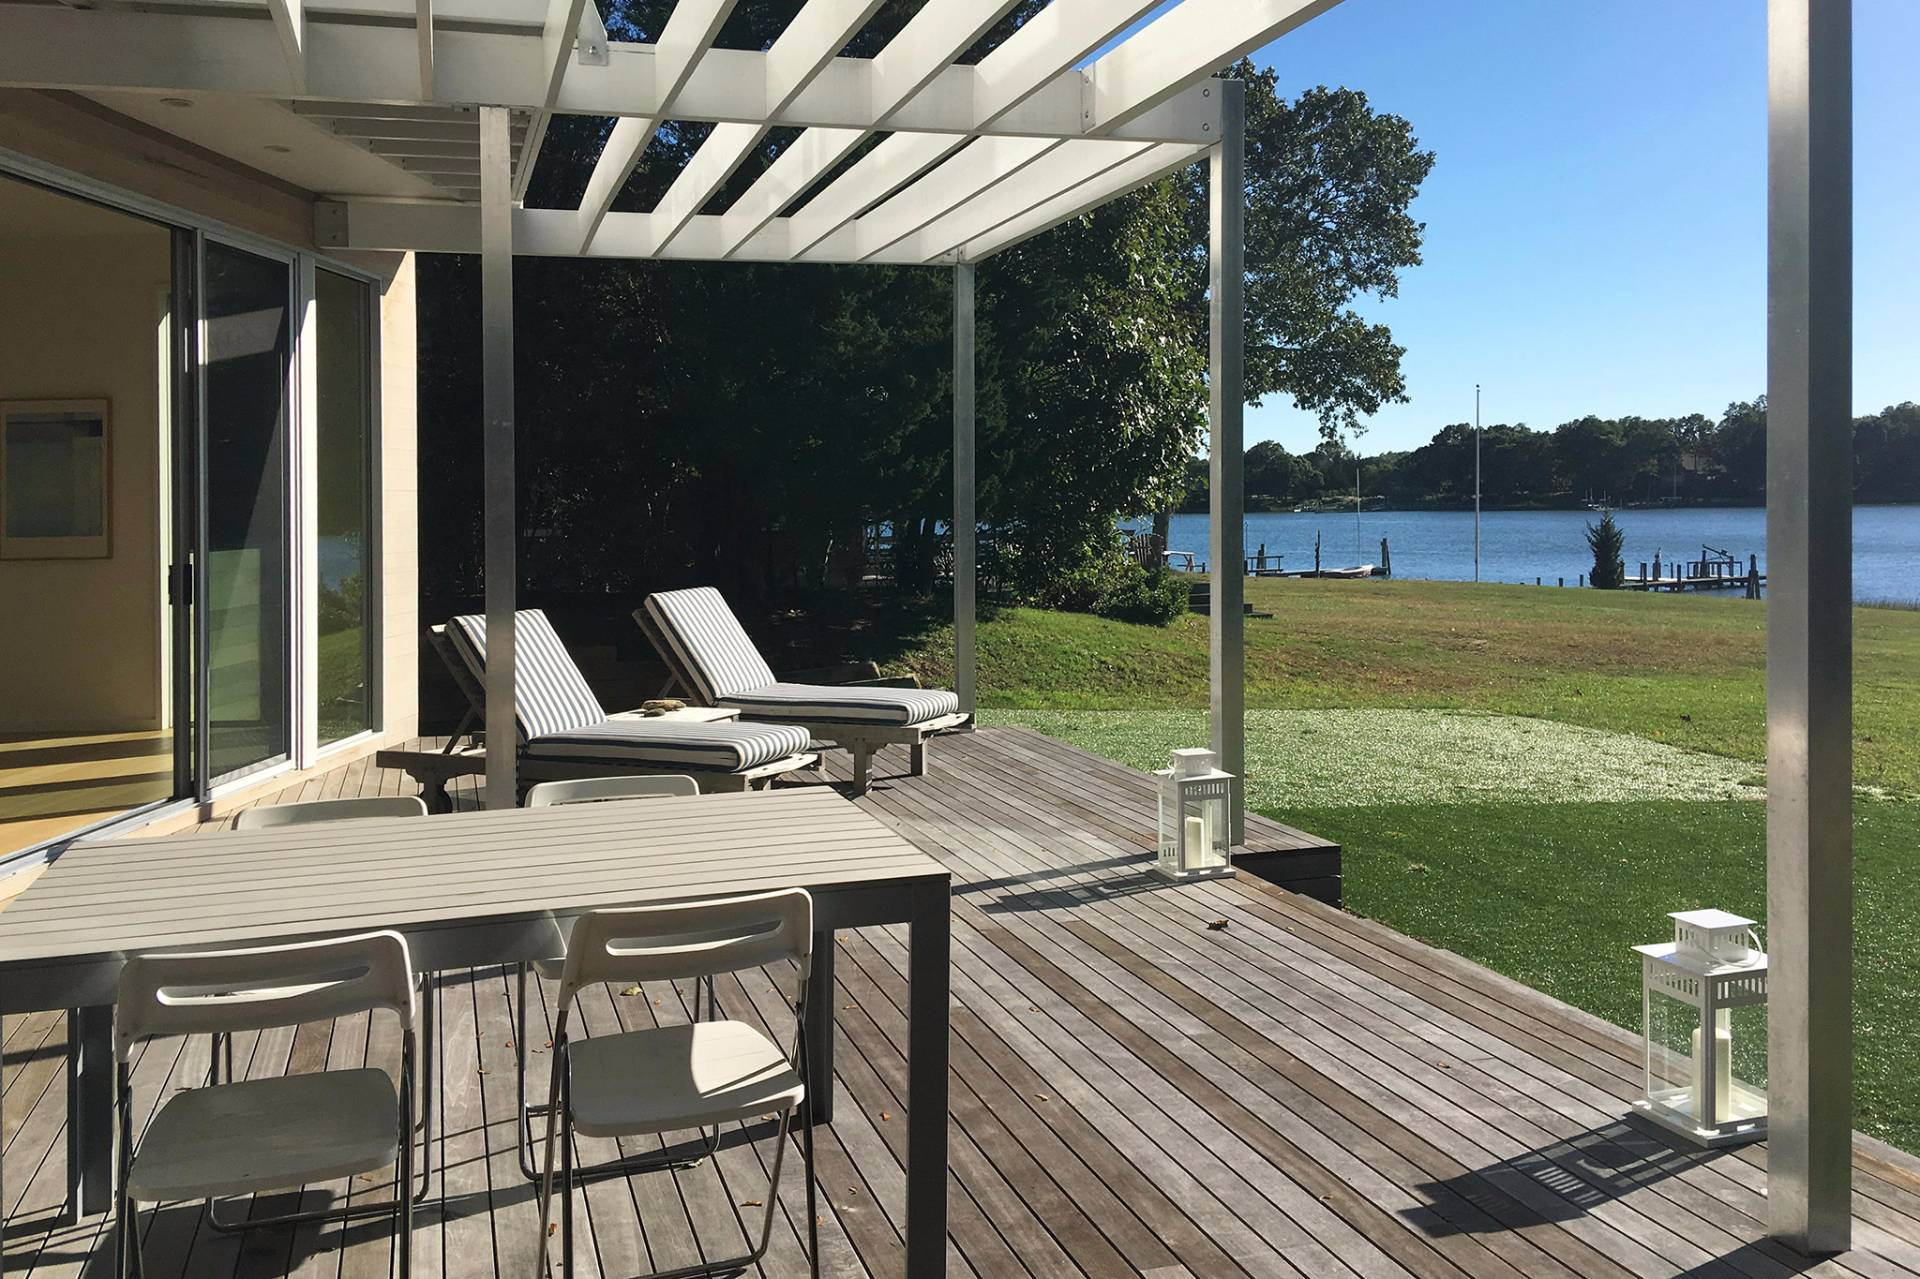 Additional photo for property listing at Sleek Shelter Island Waterfront With Dock  Shelter Island, Nueva York